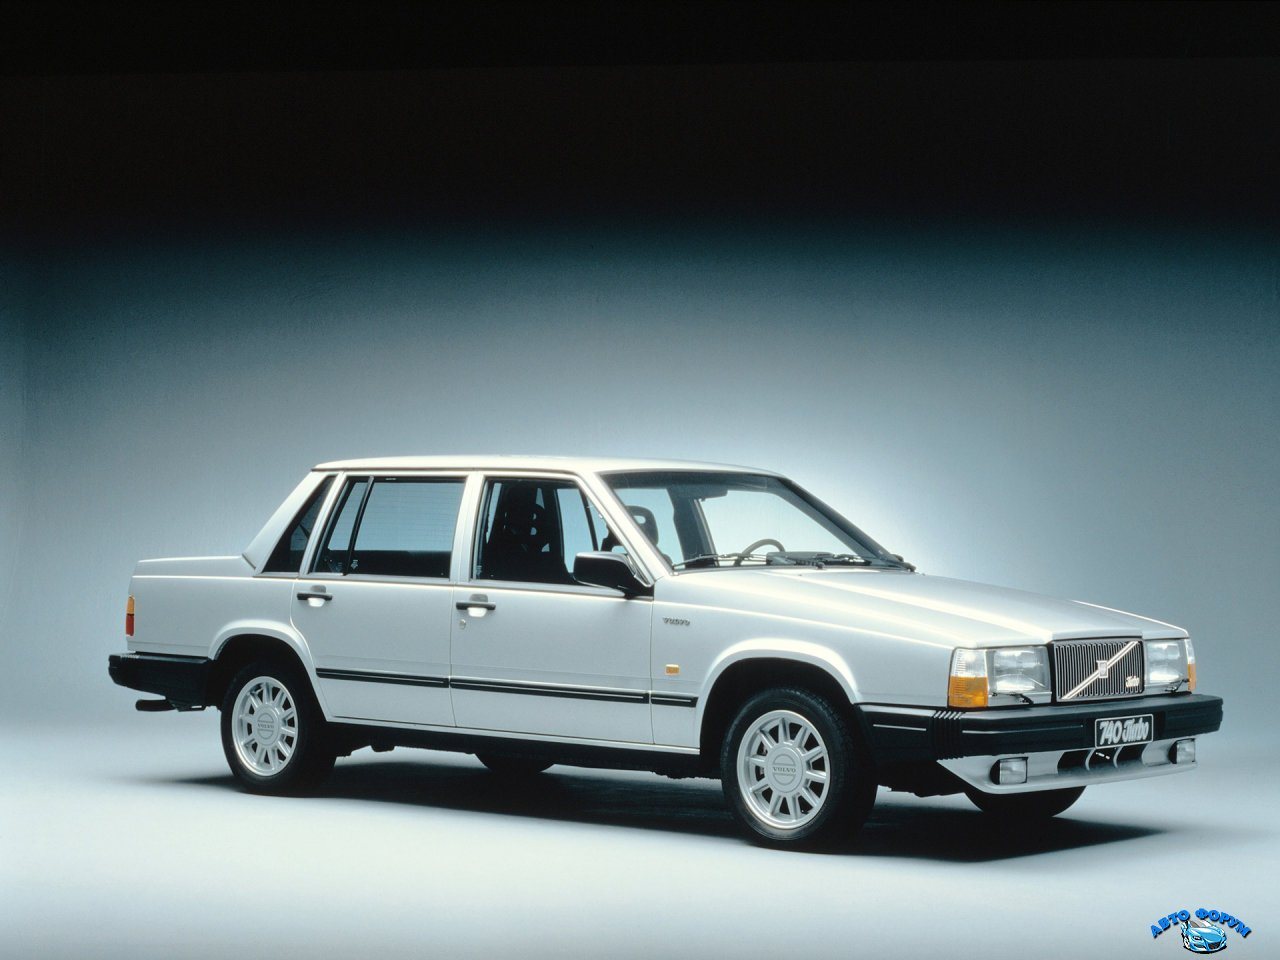 Volvo_740_740 Turbo_Sedan.jpg